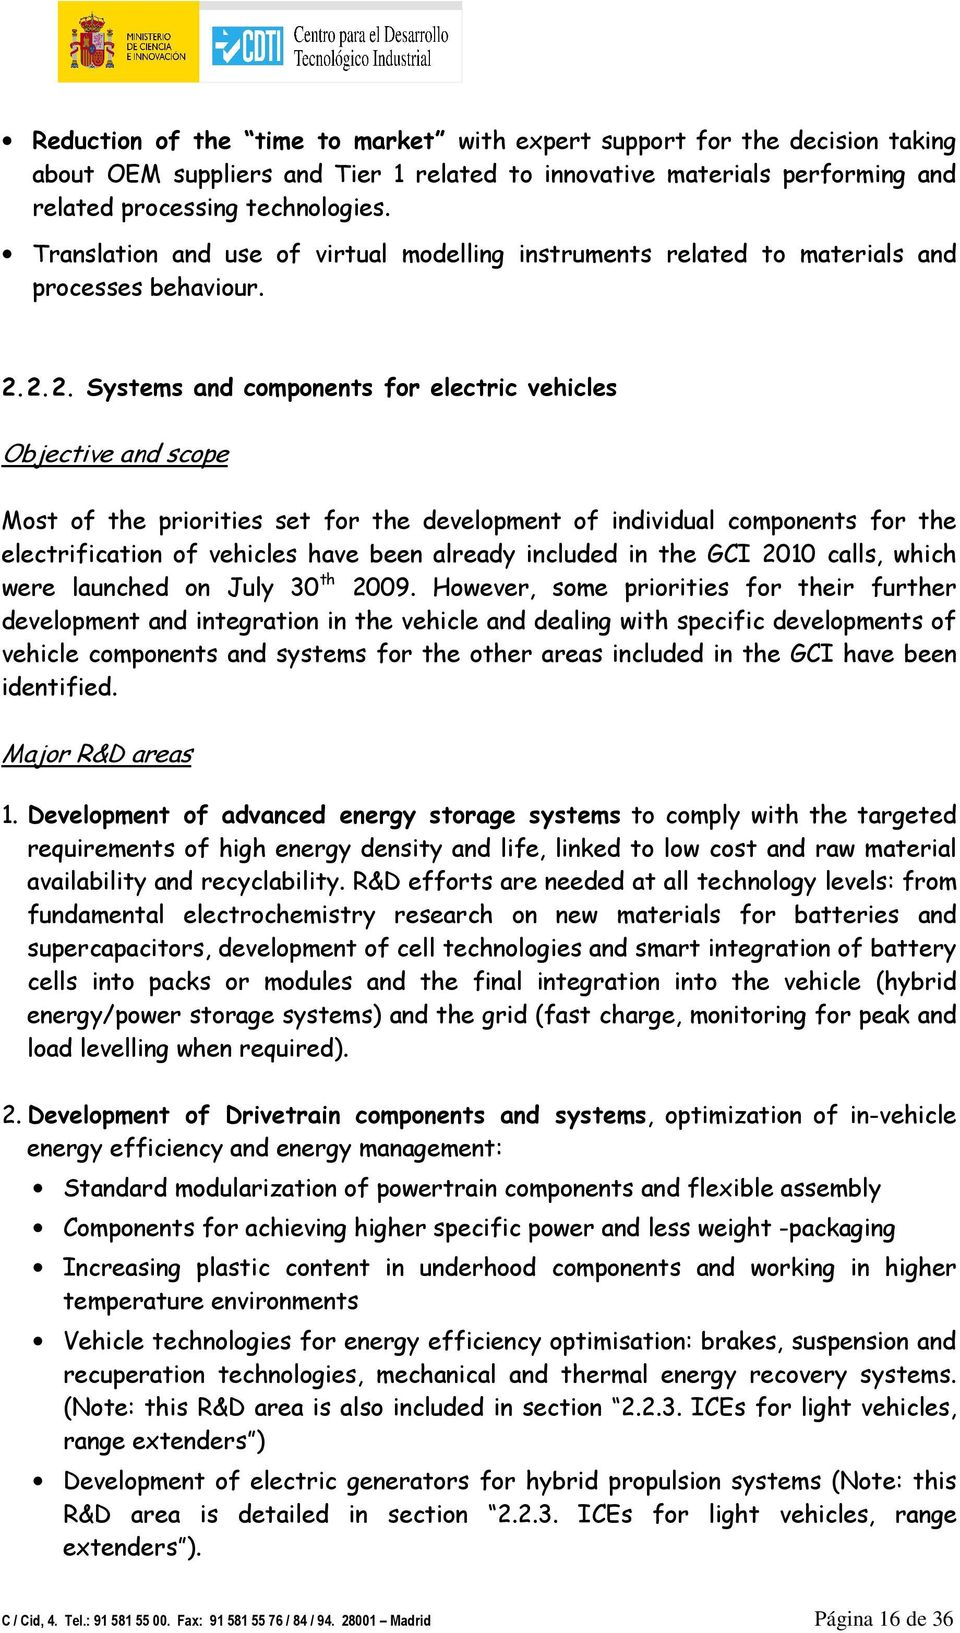 2.2. Systems and components for electric vehicles Objective and scope Most of the priorities set for the development of individual components for the electrification of vehicles have been already